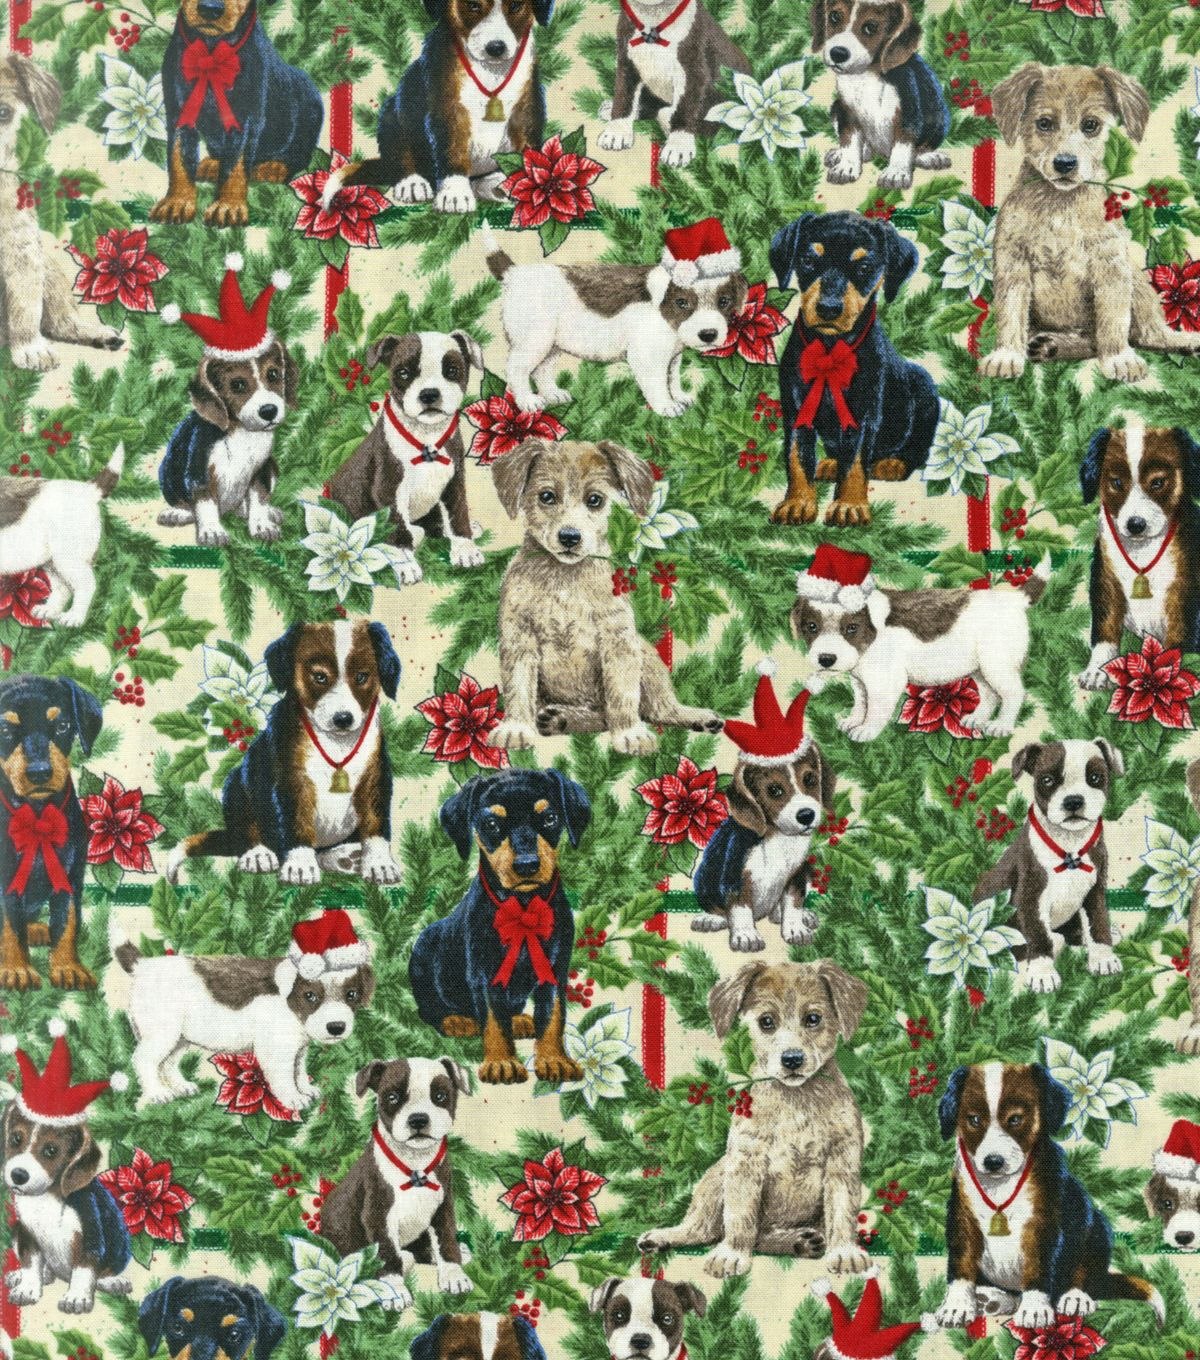 Holiday Inspirations Fabric- Christmas Puppies & PineHoliday Inspirations Fabric- Christmas Puppies & Pine,